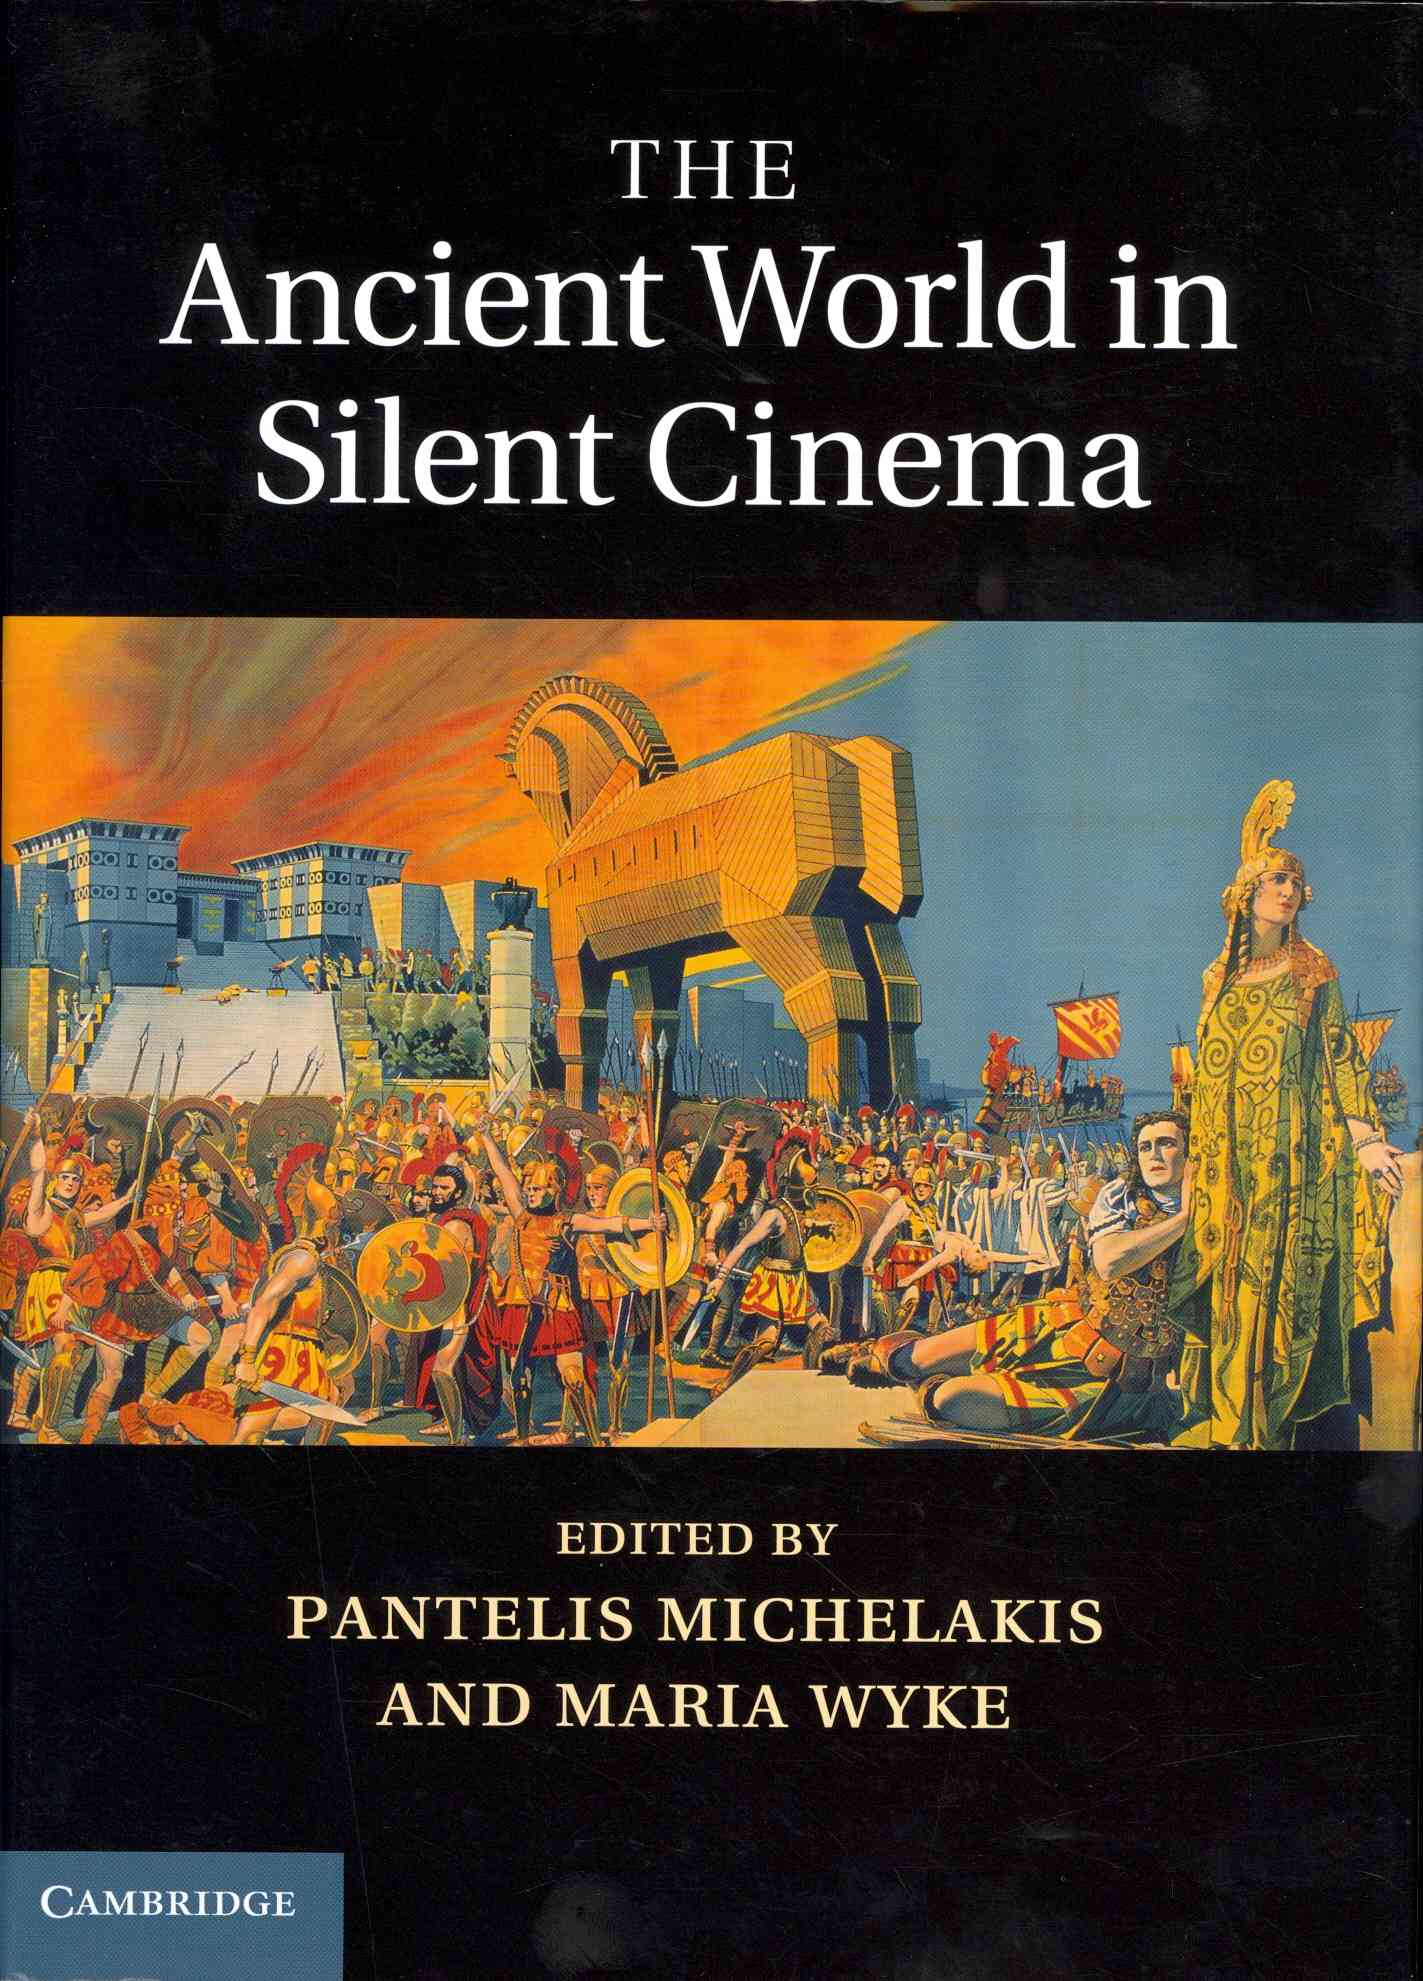 Cambridge University Press The Ancient World in Silent Cinema by Michelakis, Pantelis/ Wyke, Maria [Hardcover] at Sears.com